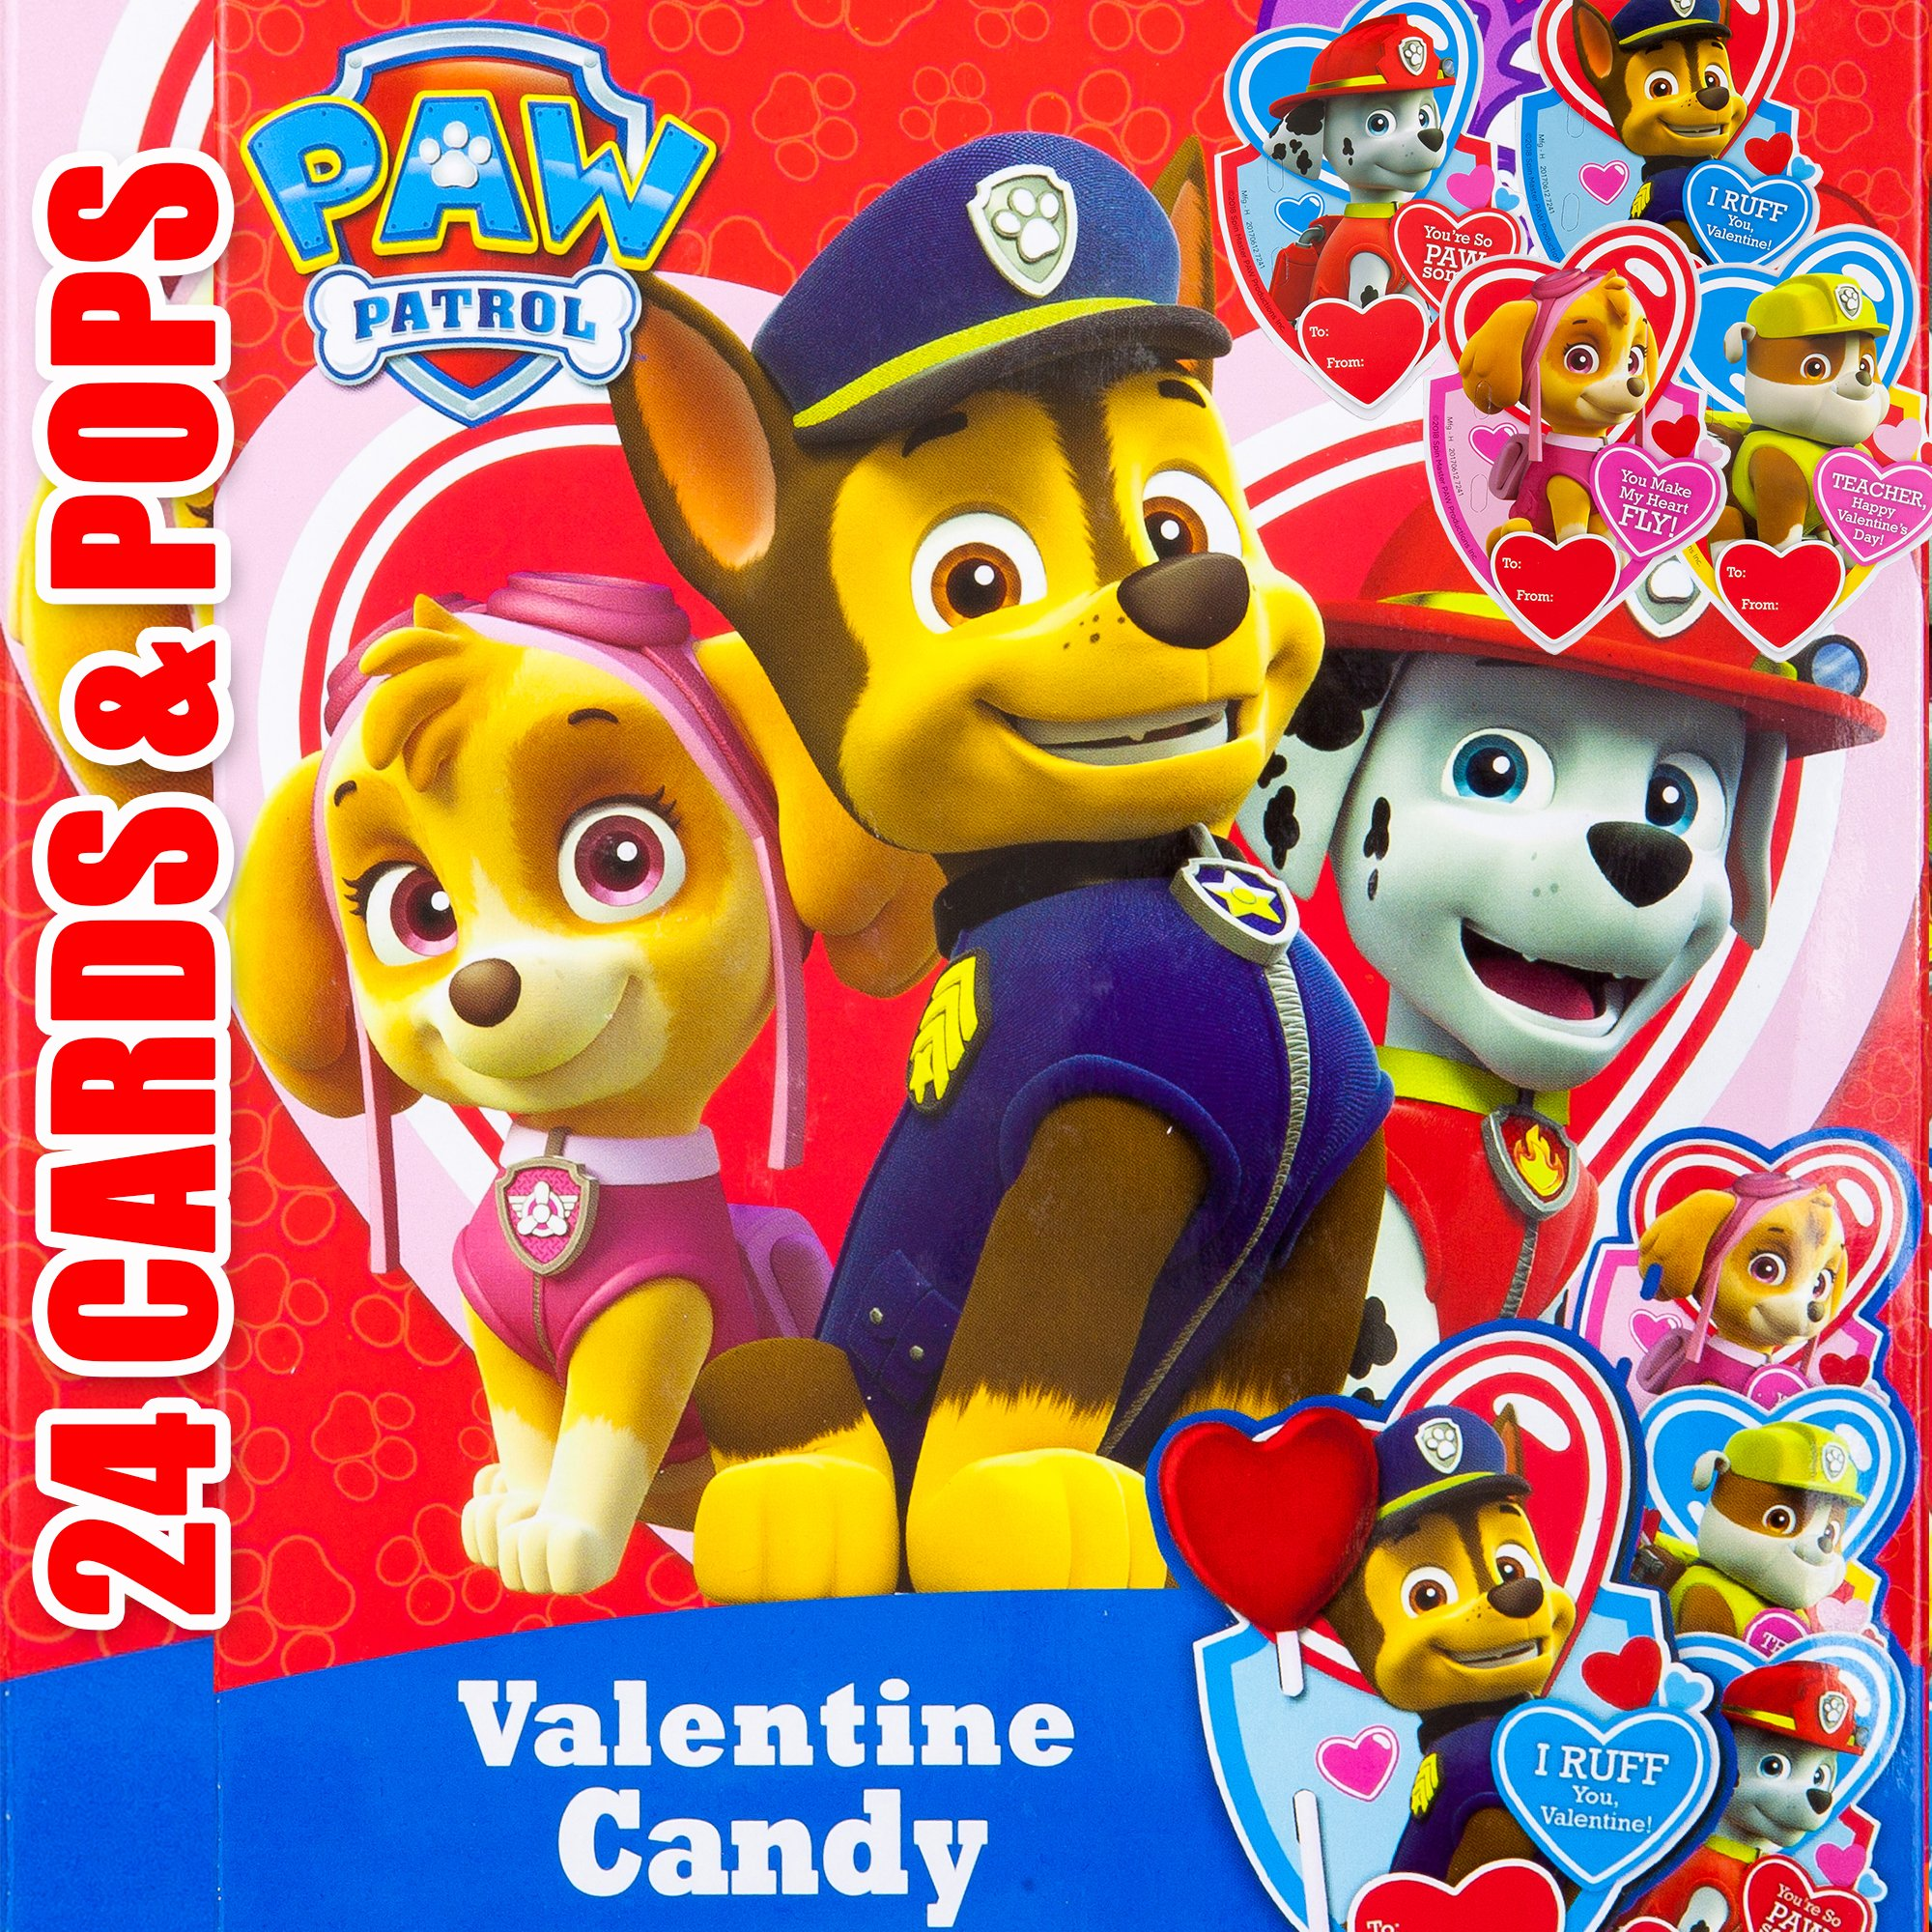 Valentines Day Classroom Exchange Gift | Paw Patrol Characters Chase Marshall Rubble Skye 24 Valentine Cards